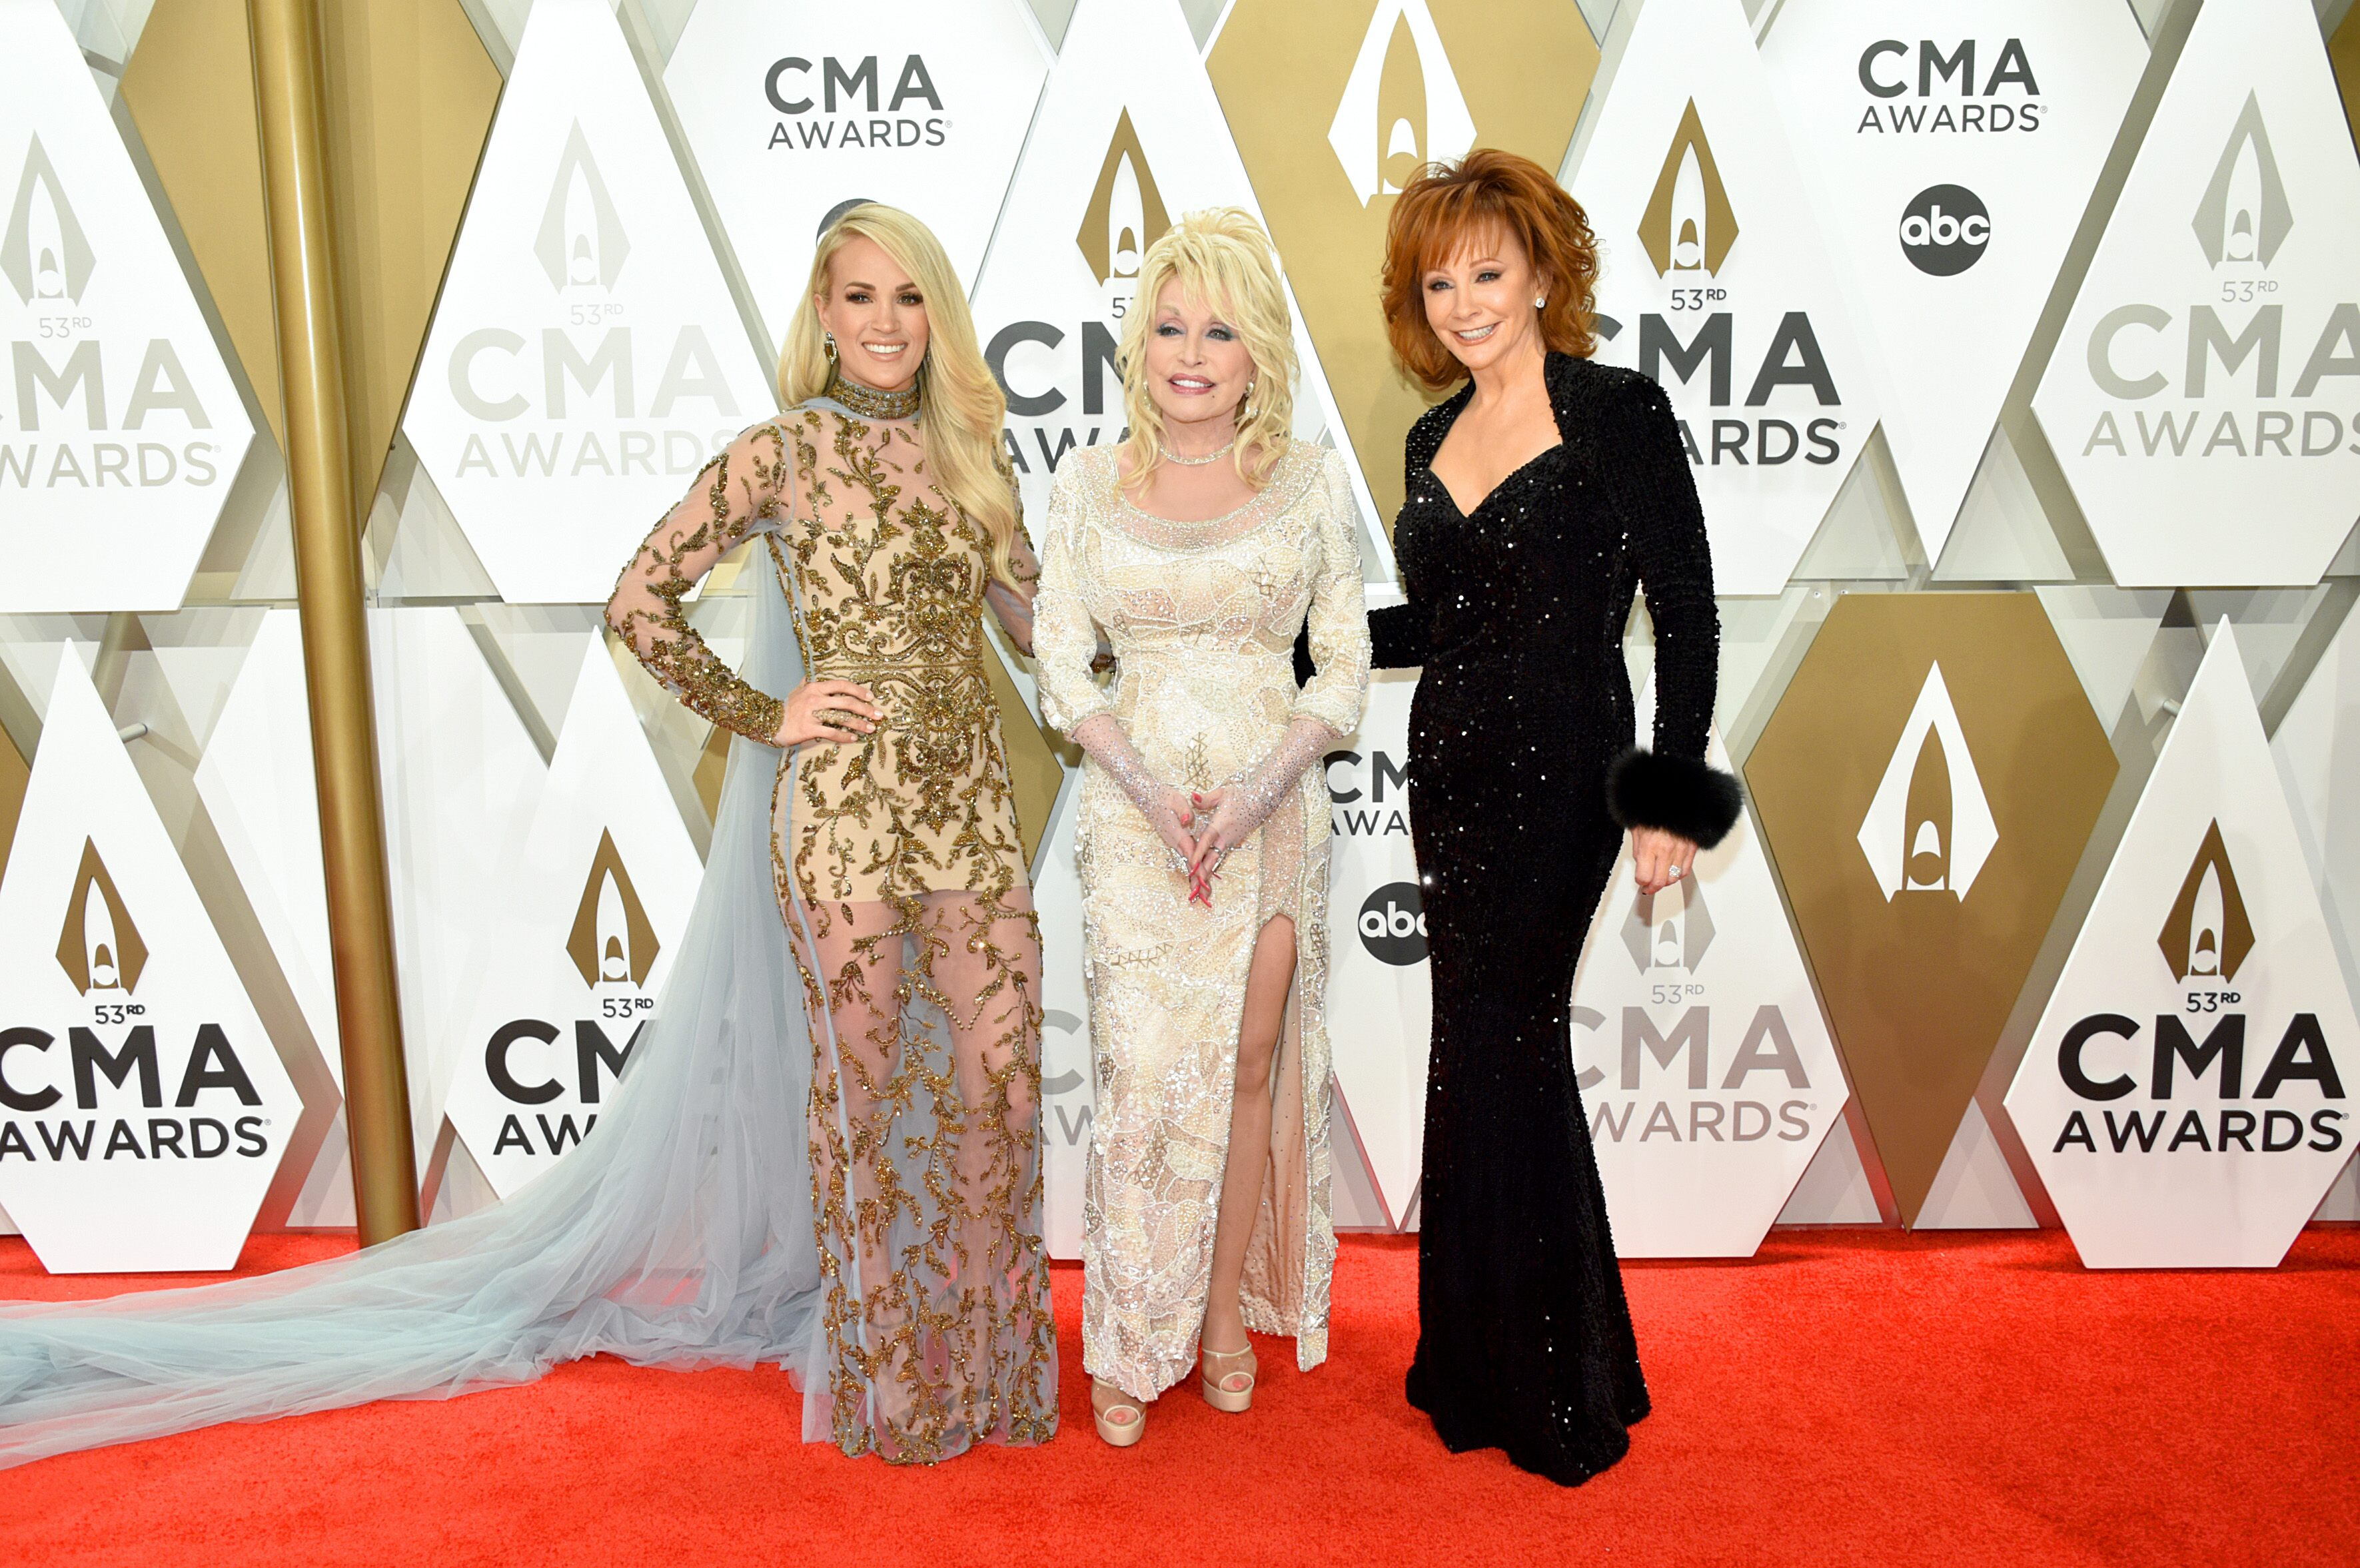 CMA Awards kick off with